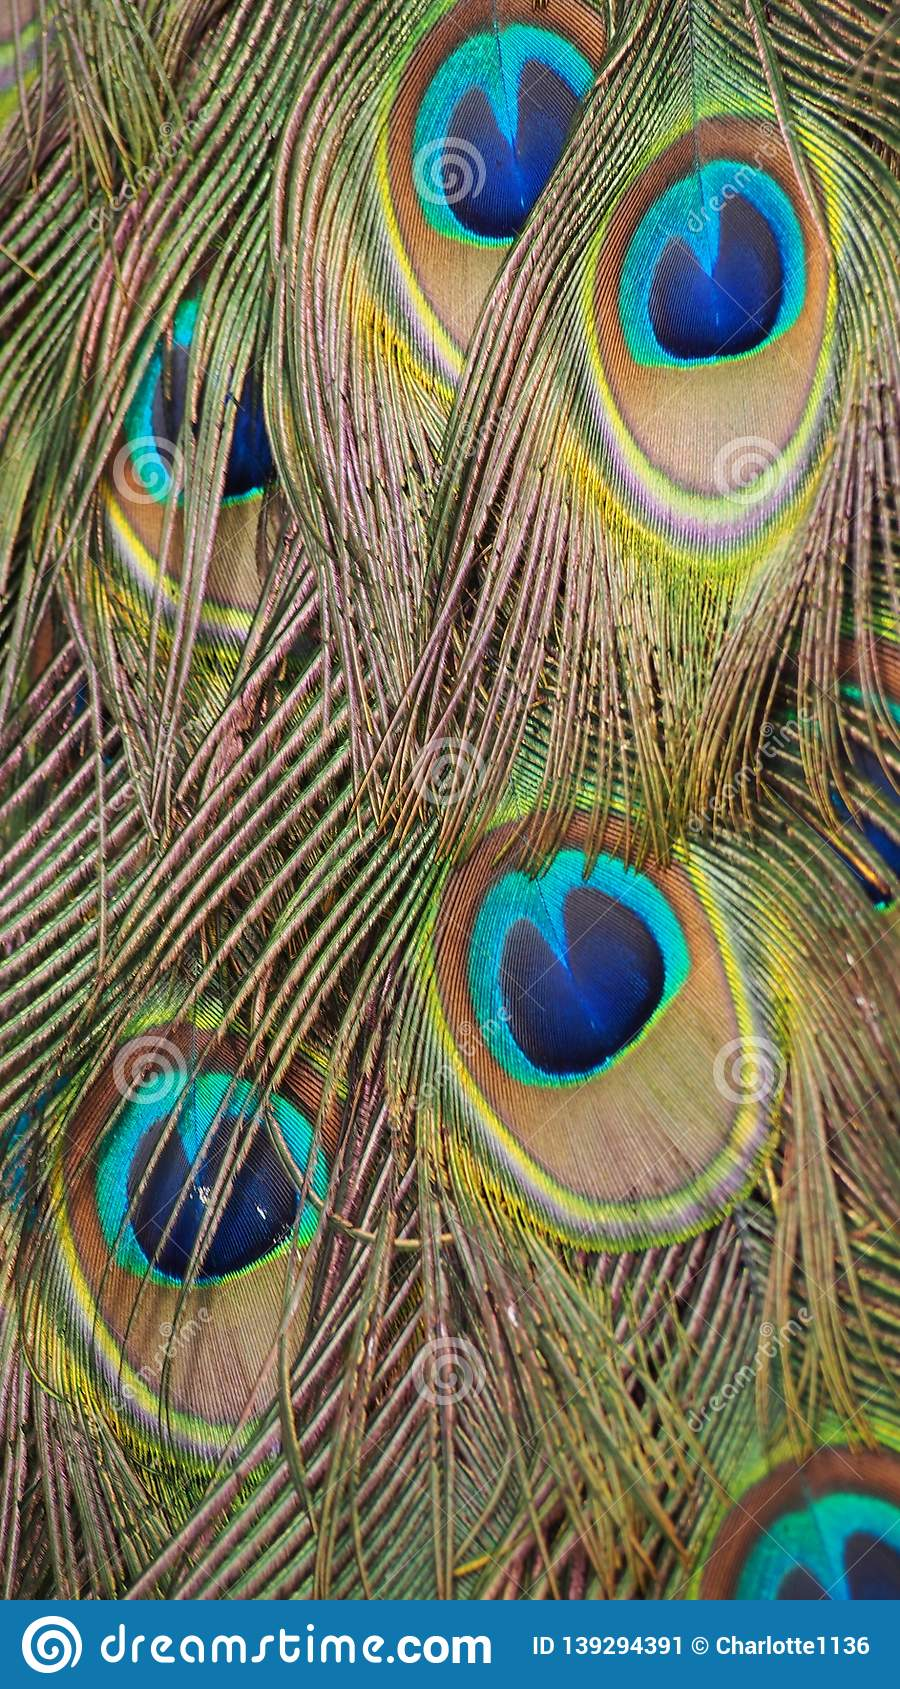 Colorful feathers of a peacock